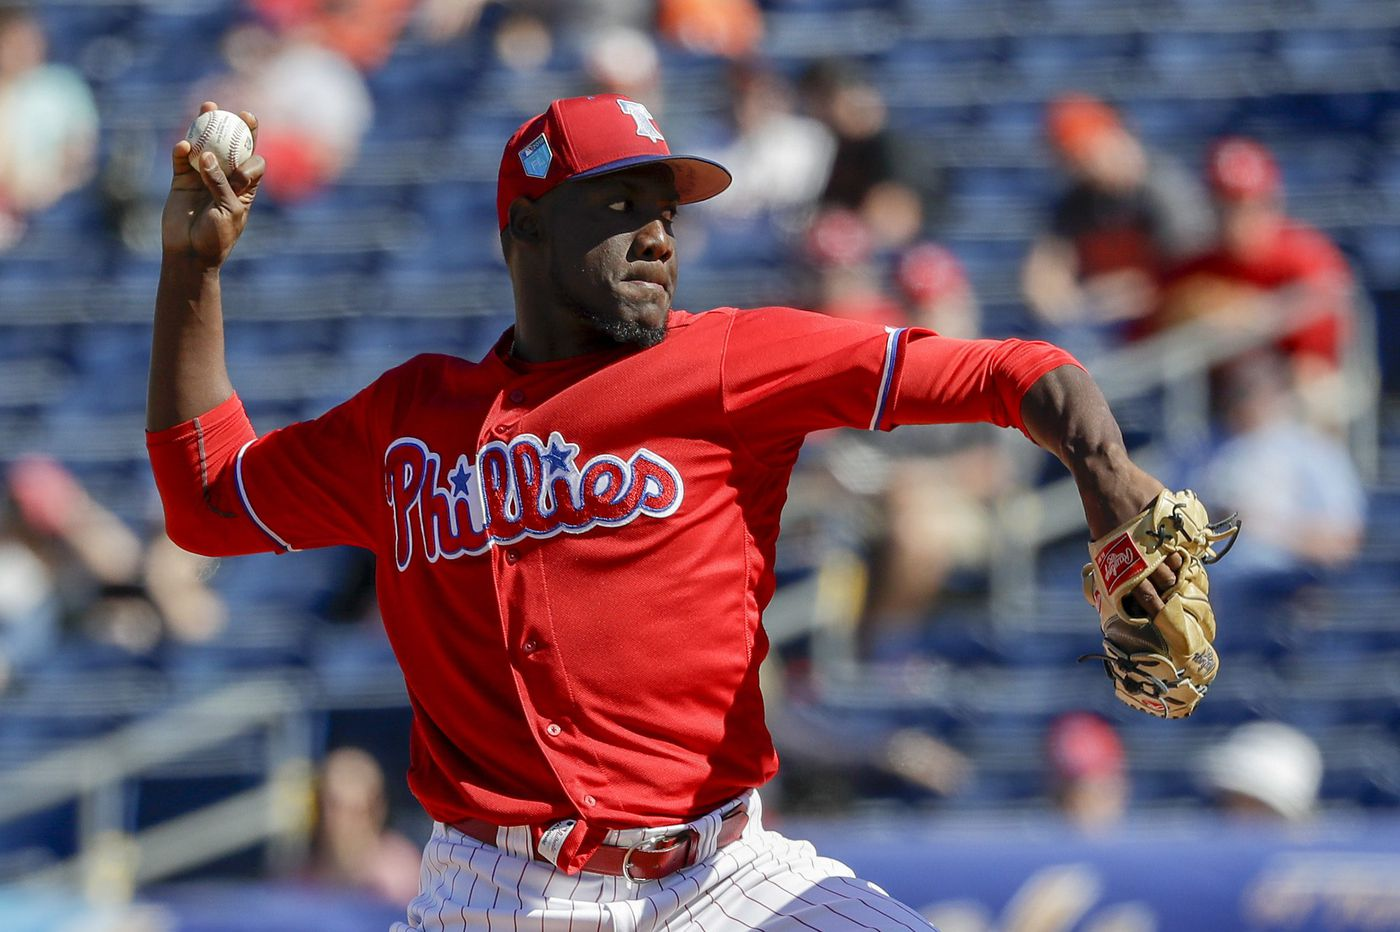 Phillies prospect Enyel De Los Santos could take the mound in the majors sooner than expected